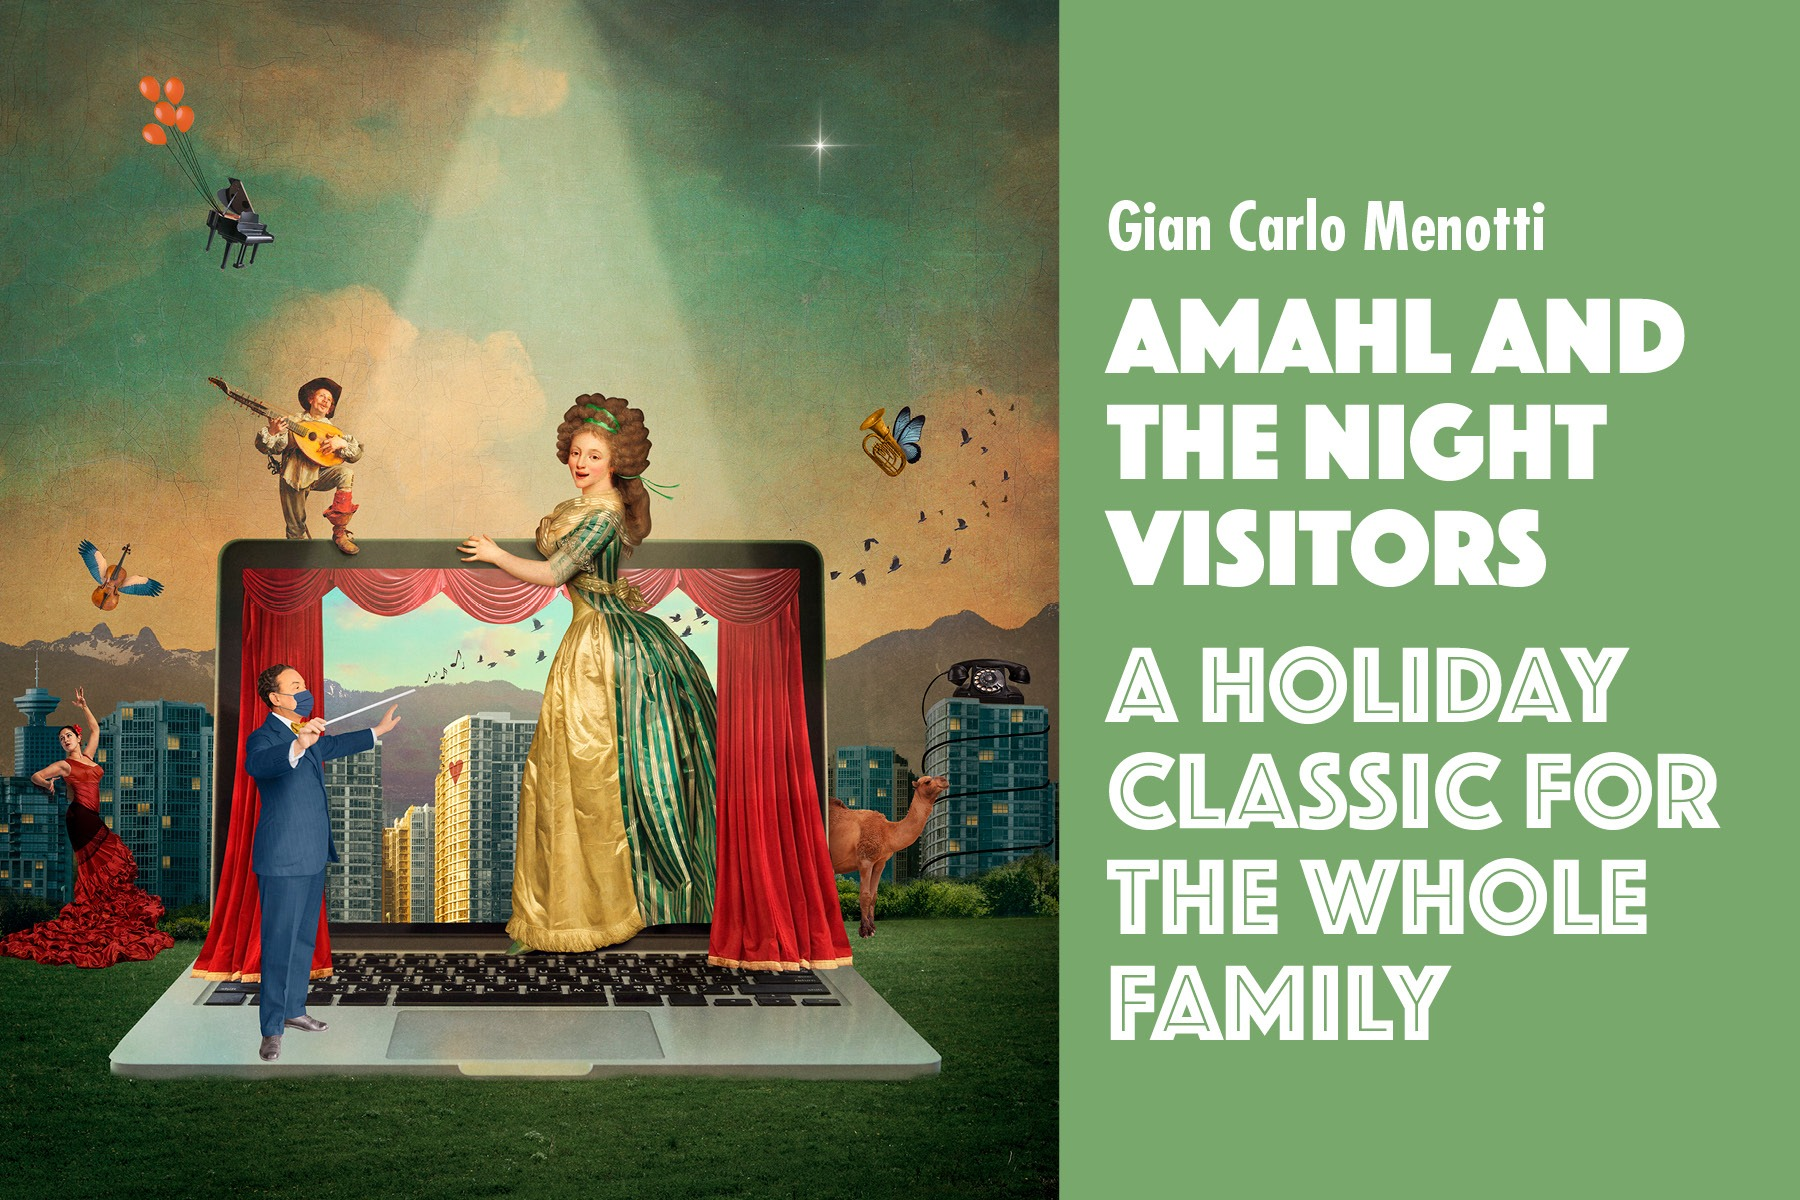 Amahl and the Night Visitors by Gian Carlo Menotti